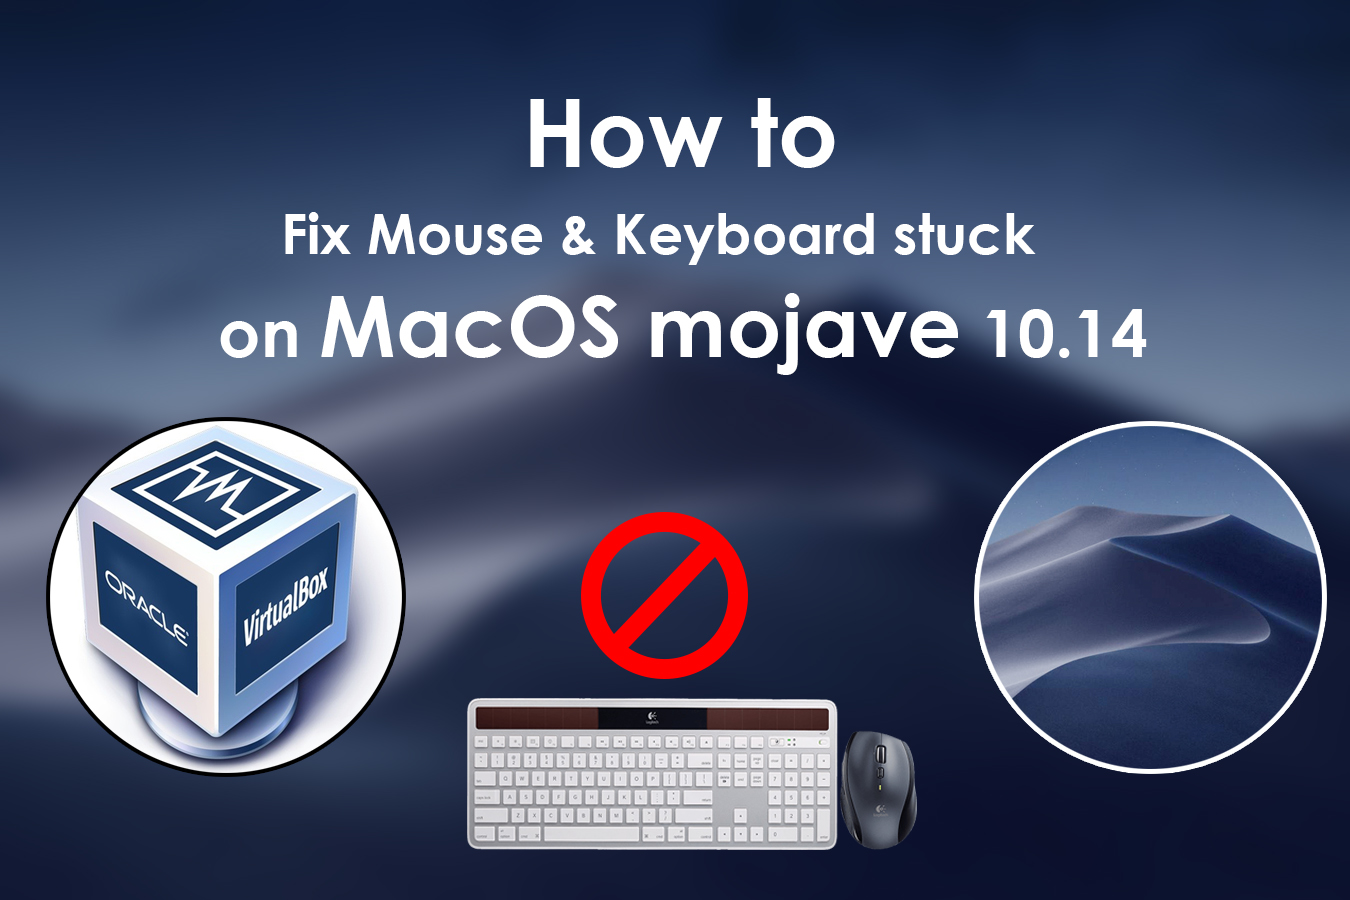 How to fix Mouse & Keyboard stuck on Mac OS mojave on